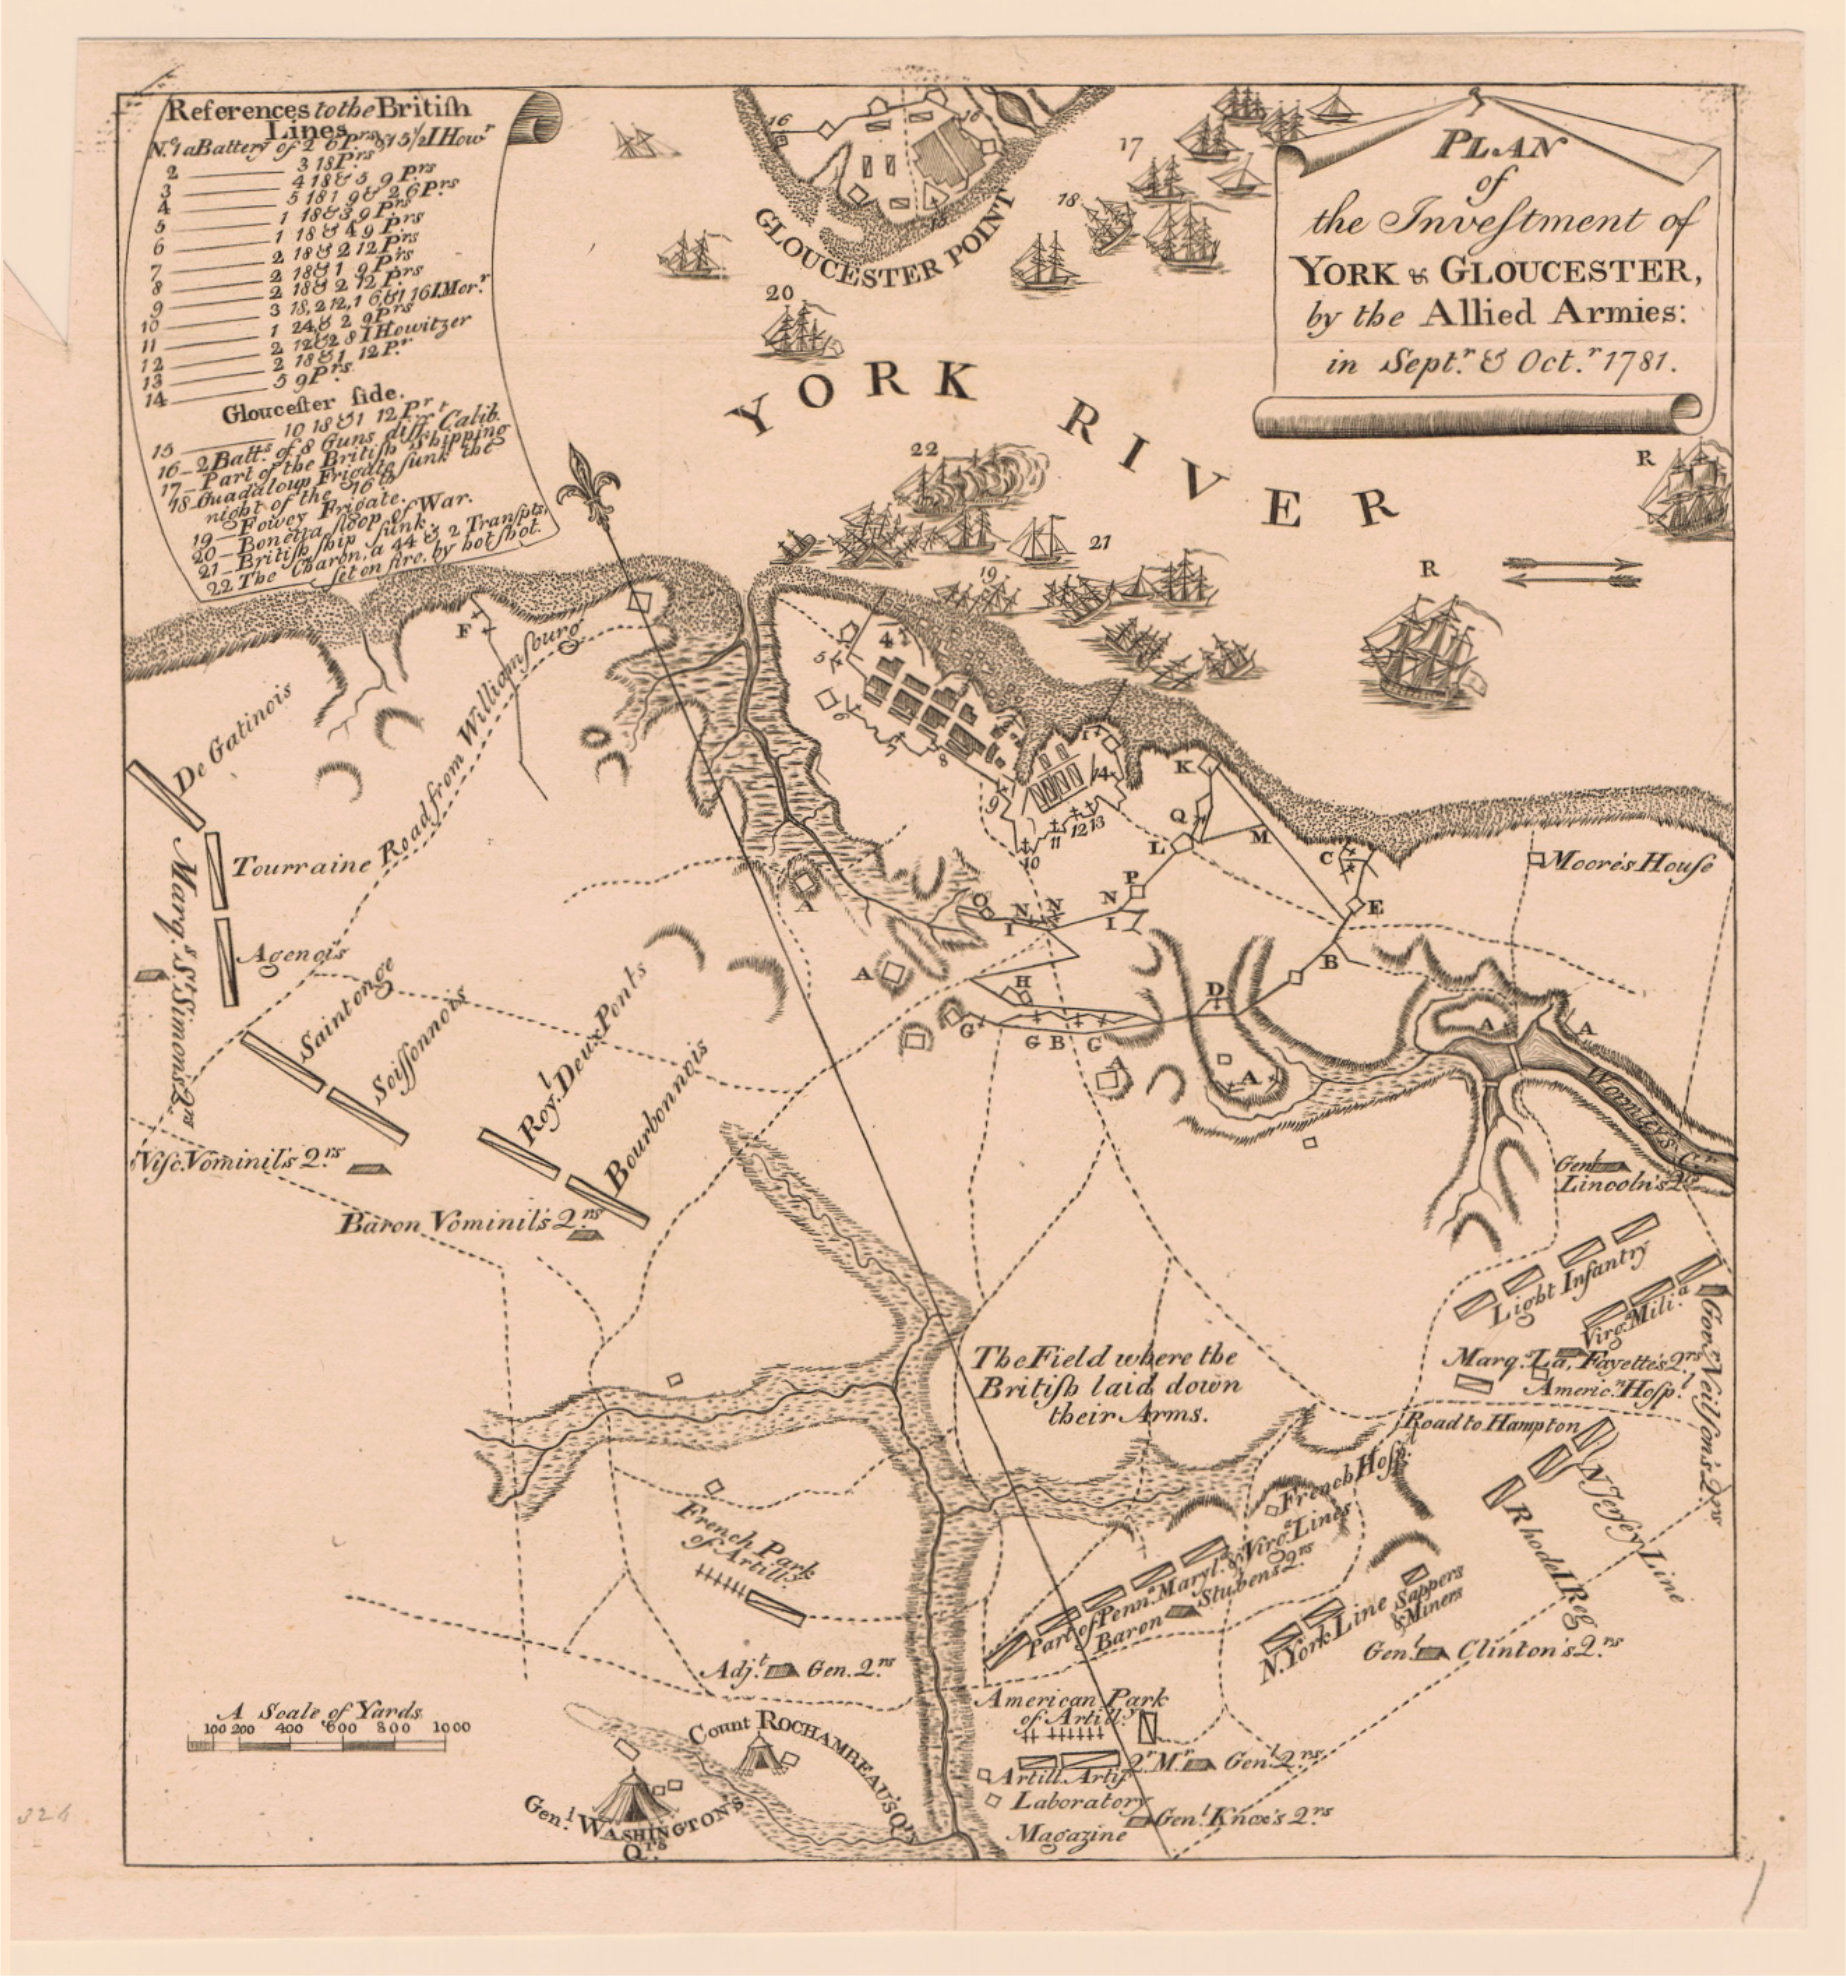 finely executed copperplate map attributed to the important early engraver of charleston south carolina thomas abernethie plan of the investment of